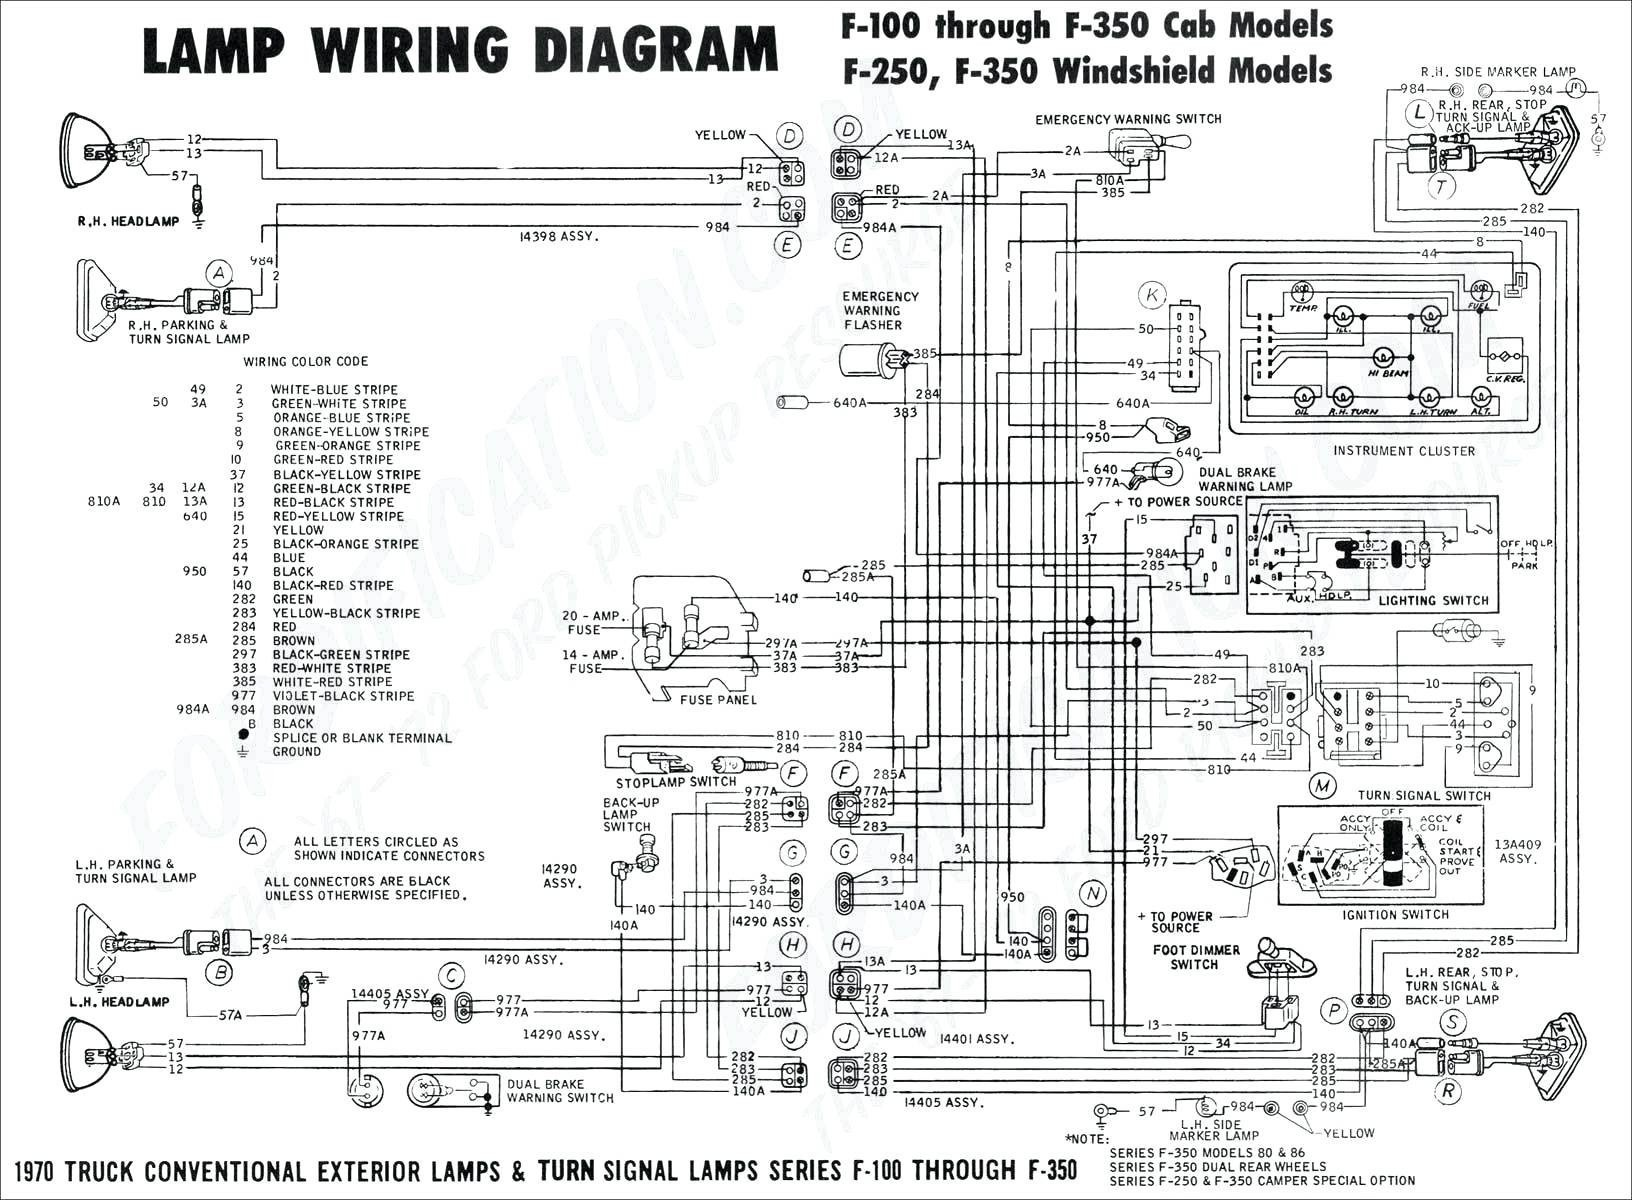 Tork Wiring Schematic for Lighting Contactor and Photocell Eaton atc 800 Wiring Diagram Contactor Wiring Diagram A1 A2 Of Tork Wiring Schematic for Lighting Contactor and Photocell Lighting Time Clock Wiring Diagram Probleme Audi A4 Voyant